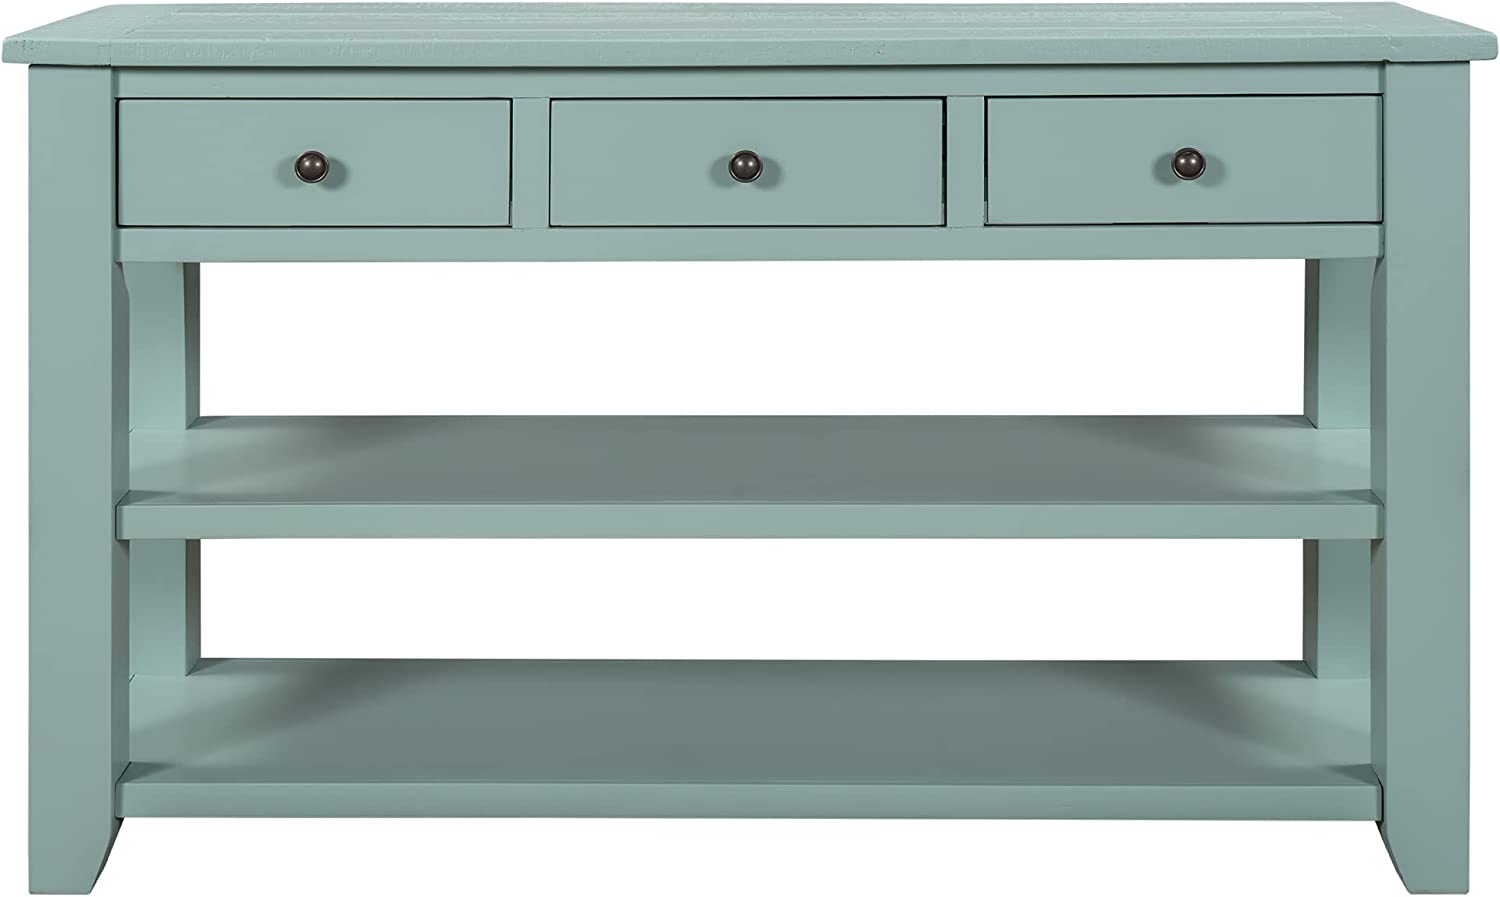 Tskxuns Industrial depot Console Table with S 48 Inches Modern Drawers Max 87% OFF